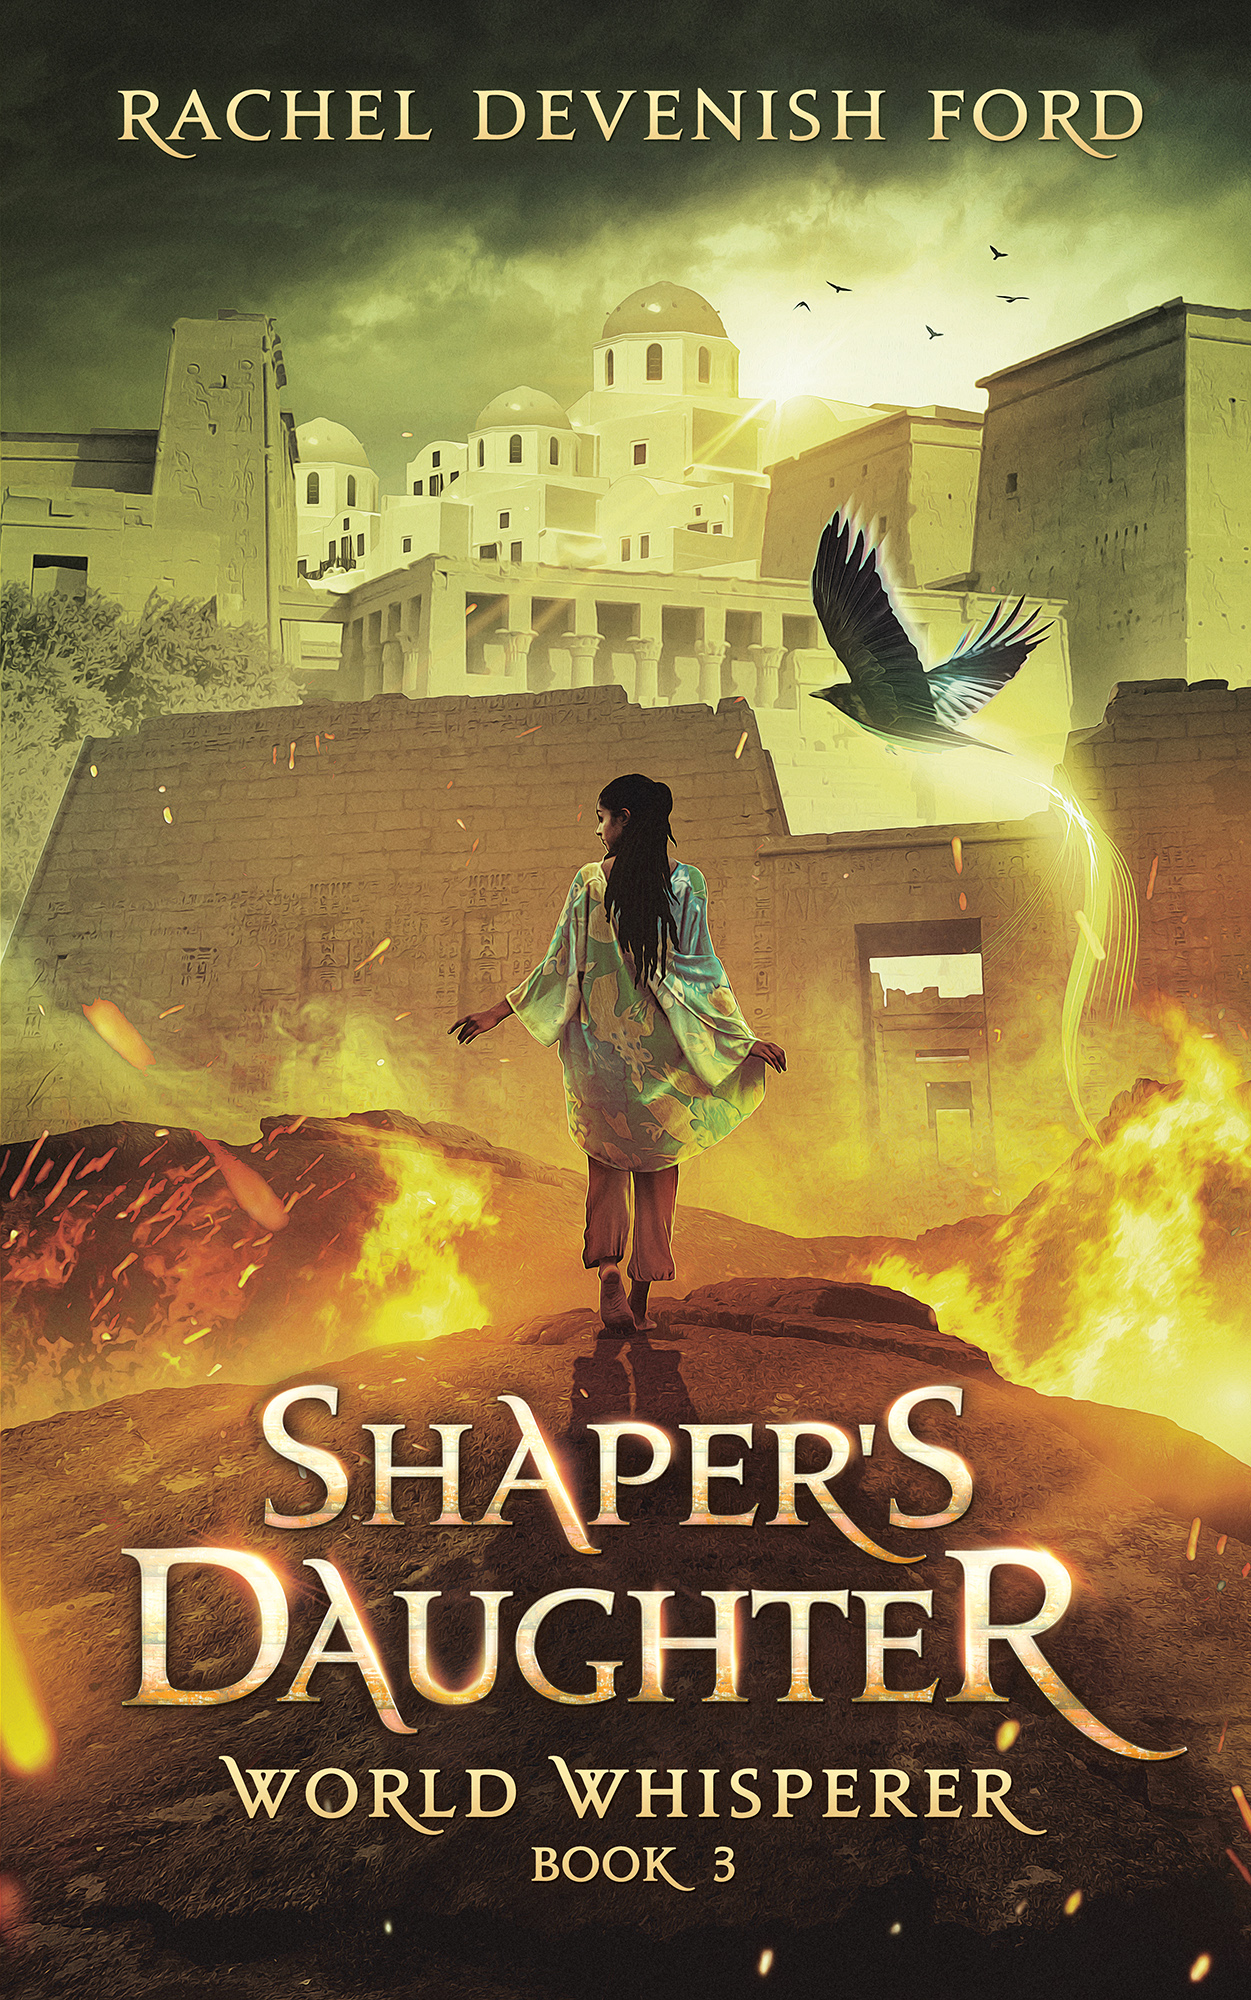 Shaper's Daughter - Ebook Small.jpg